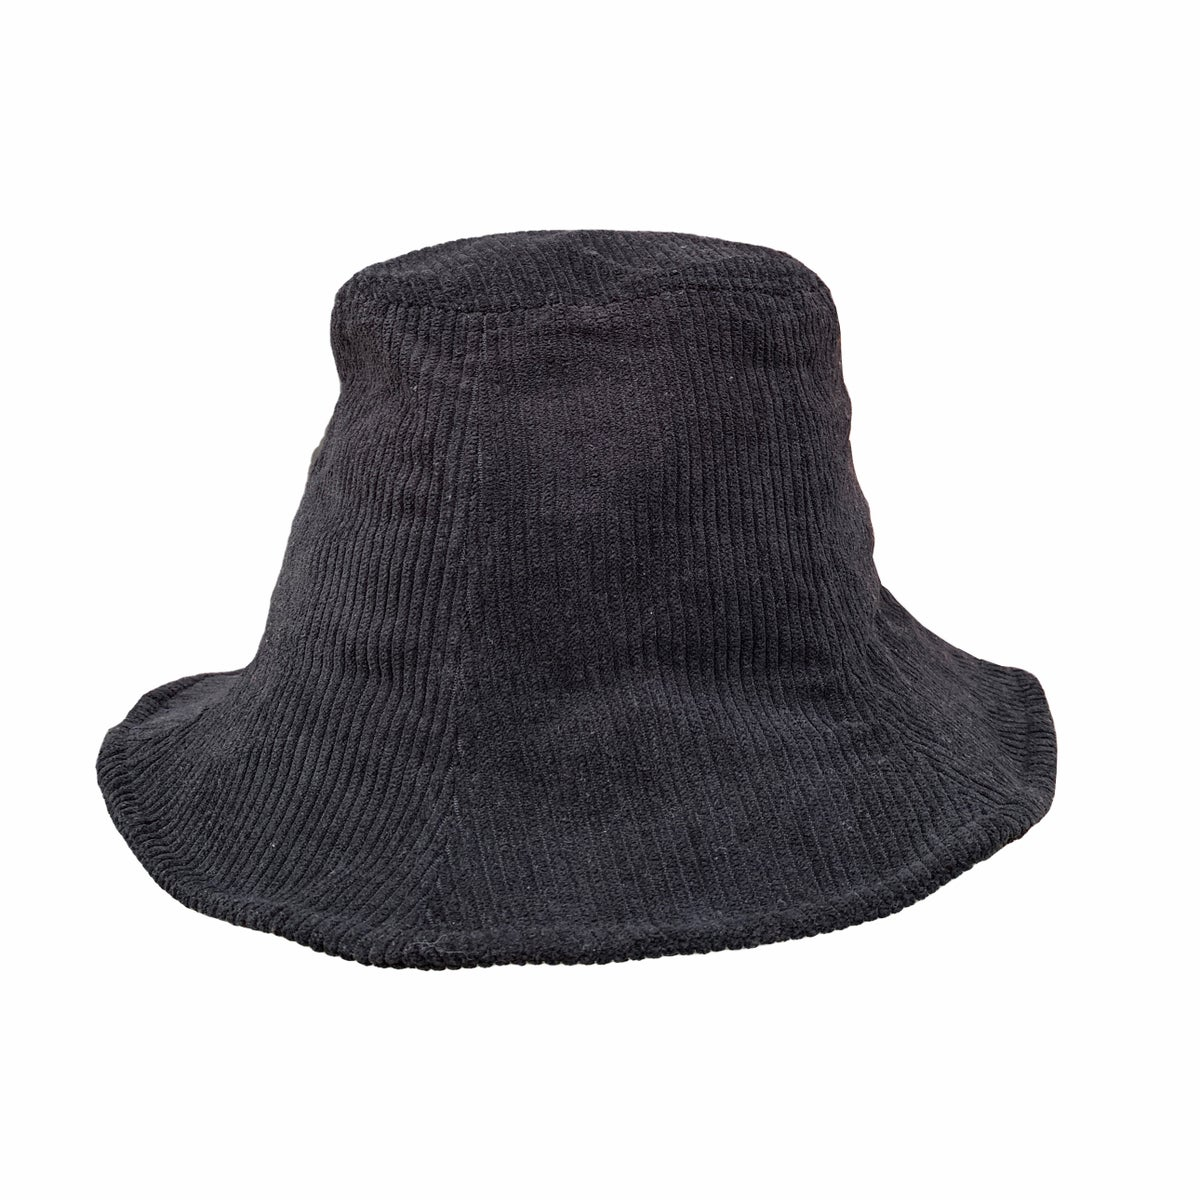 Image of Corduroy Bucket Hat. Black.(was £23 now £18.40)